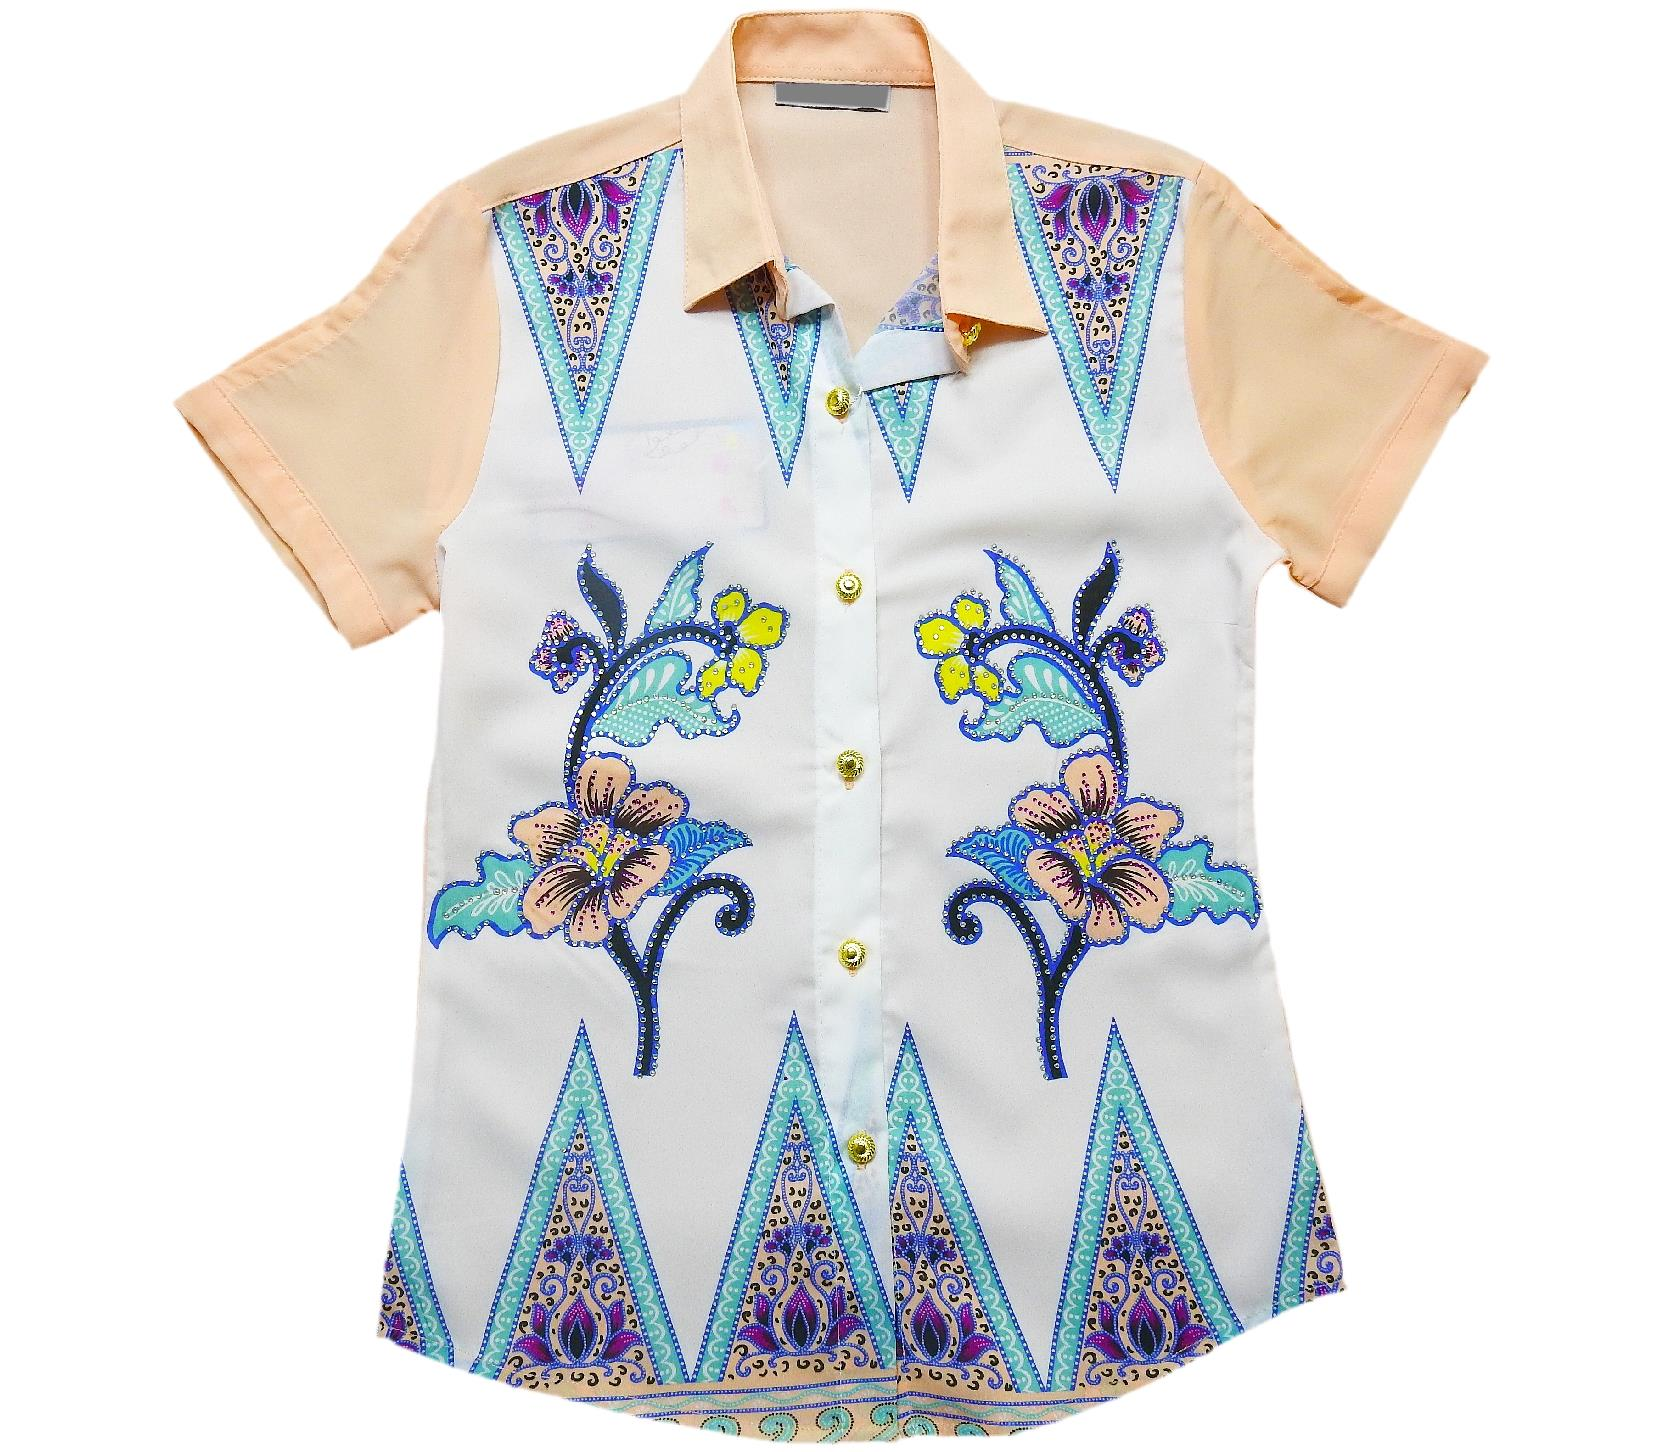 S-2056 Wholesale flower printed shirt for girl children clothes (9-10-11-12 age)